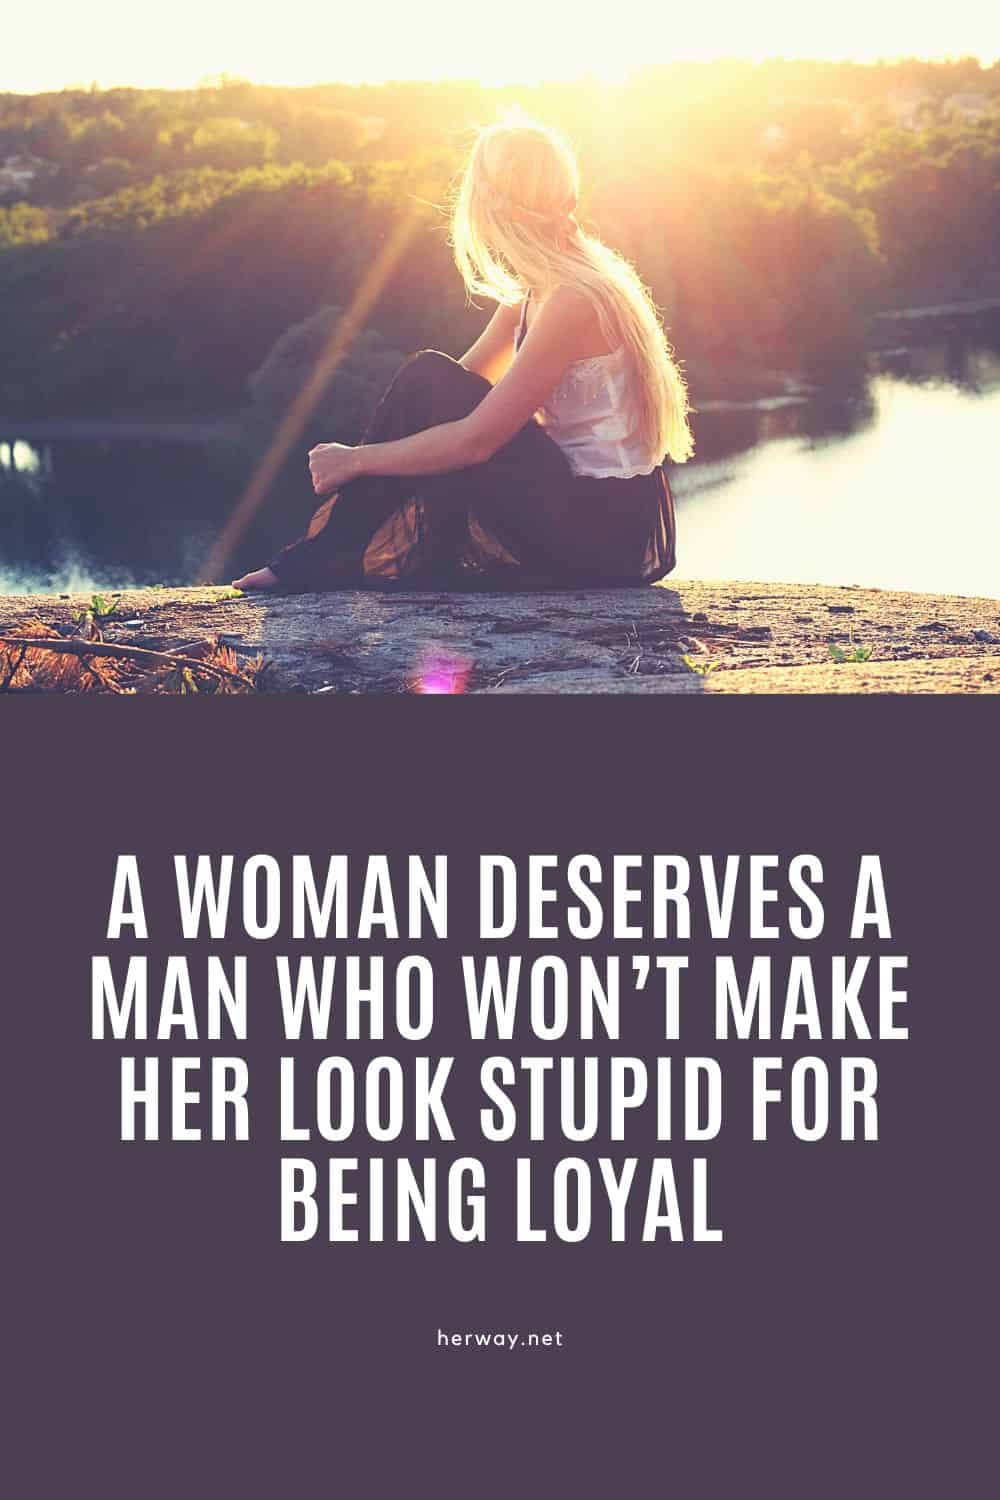 A Woman Deserves A Man Who Won't Make Her Look Stupid For Being Loyal